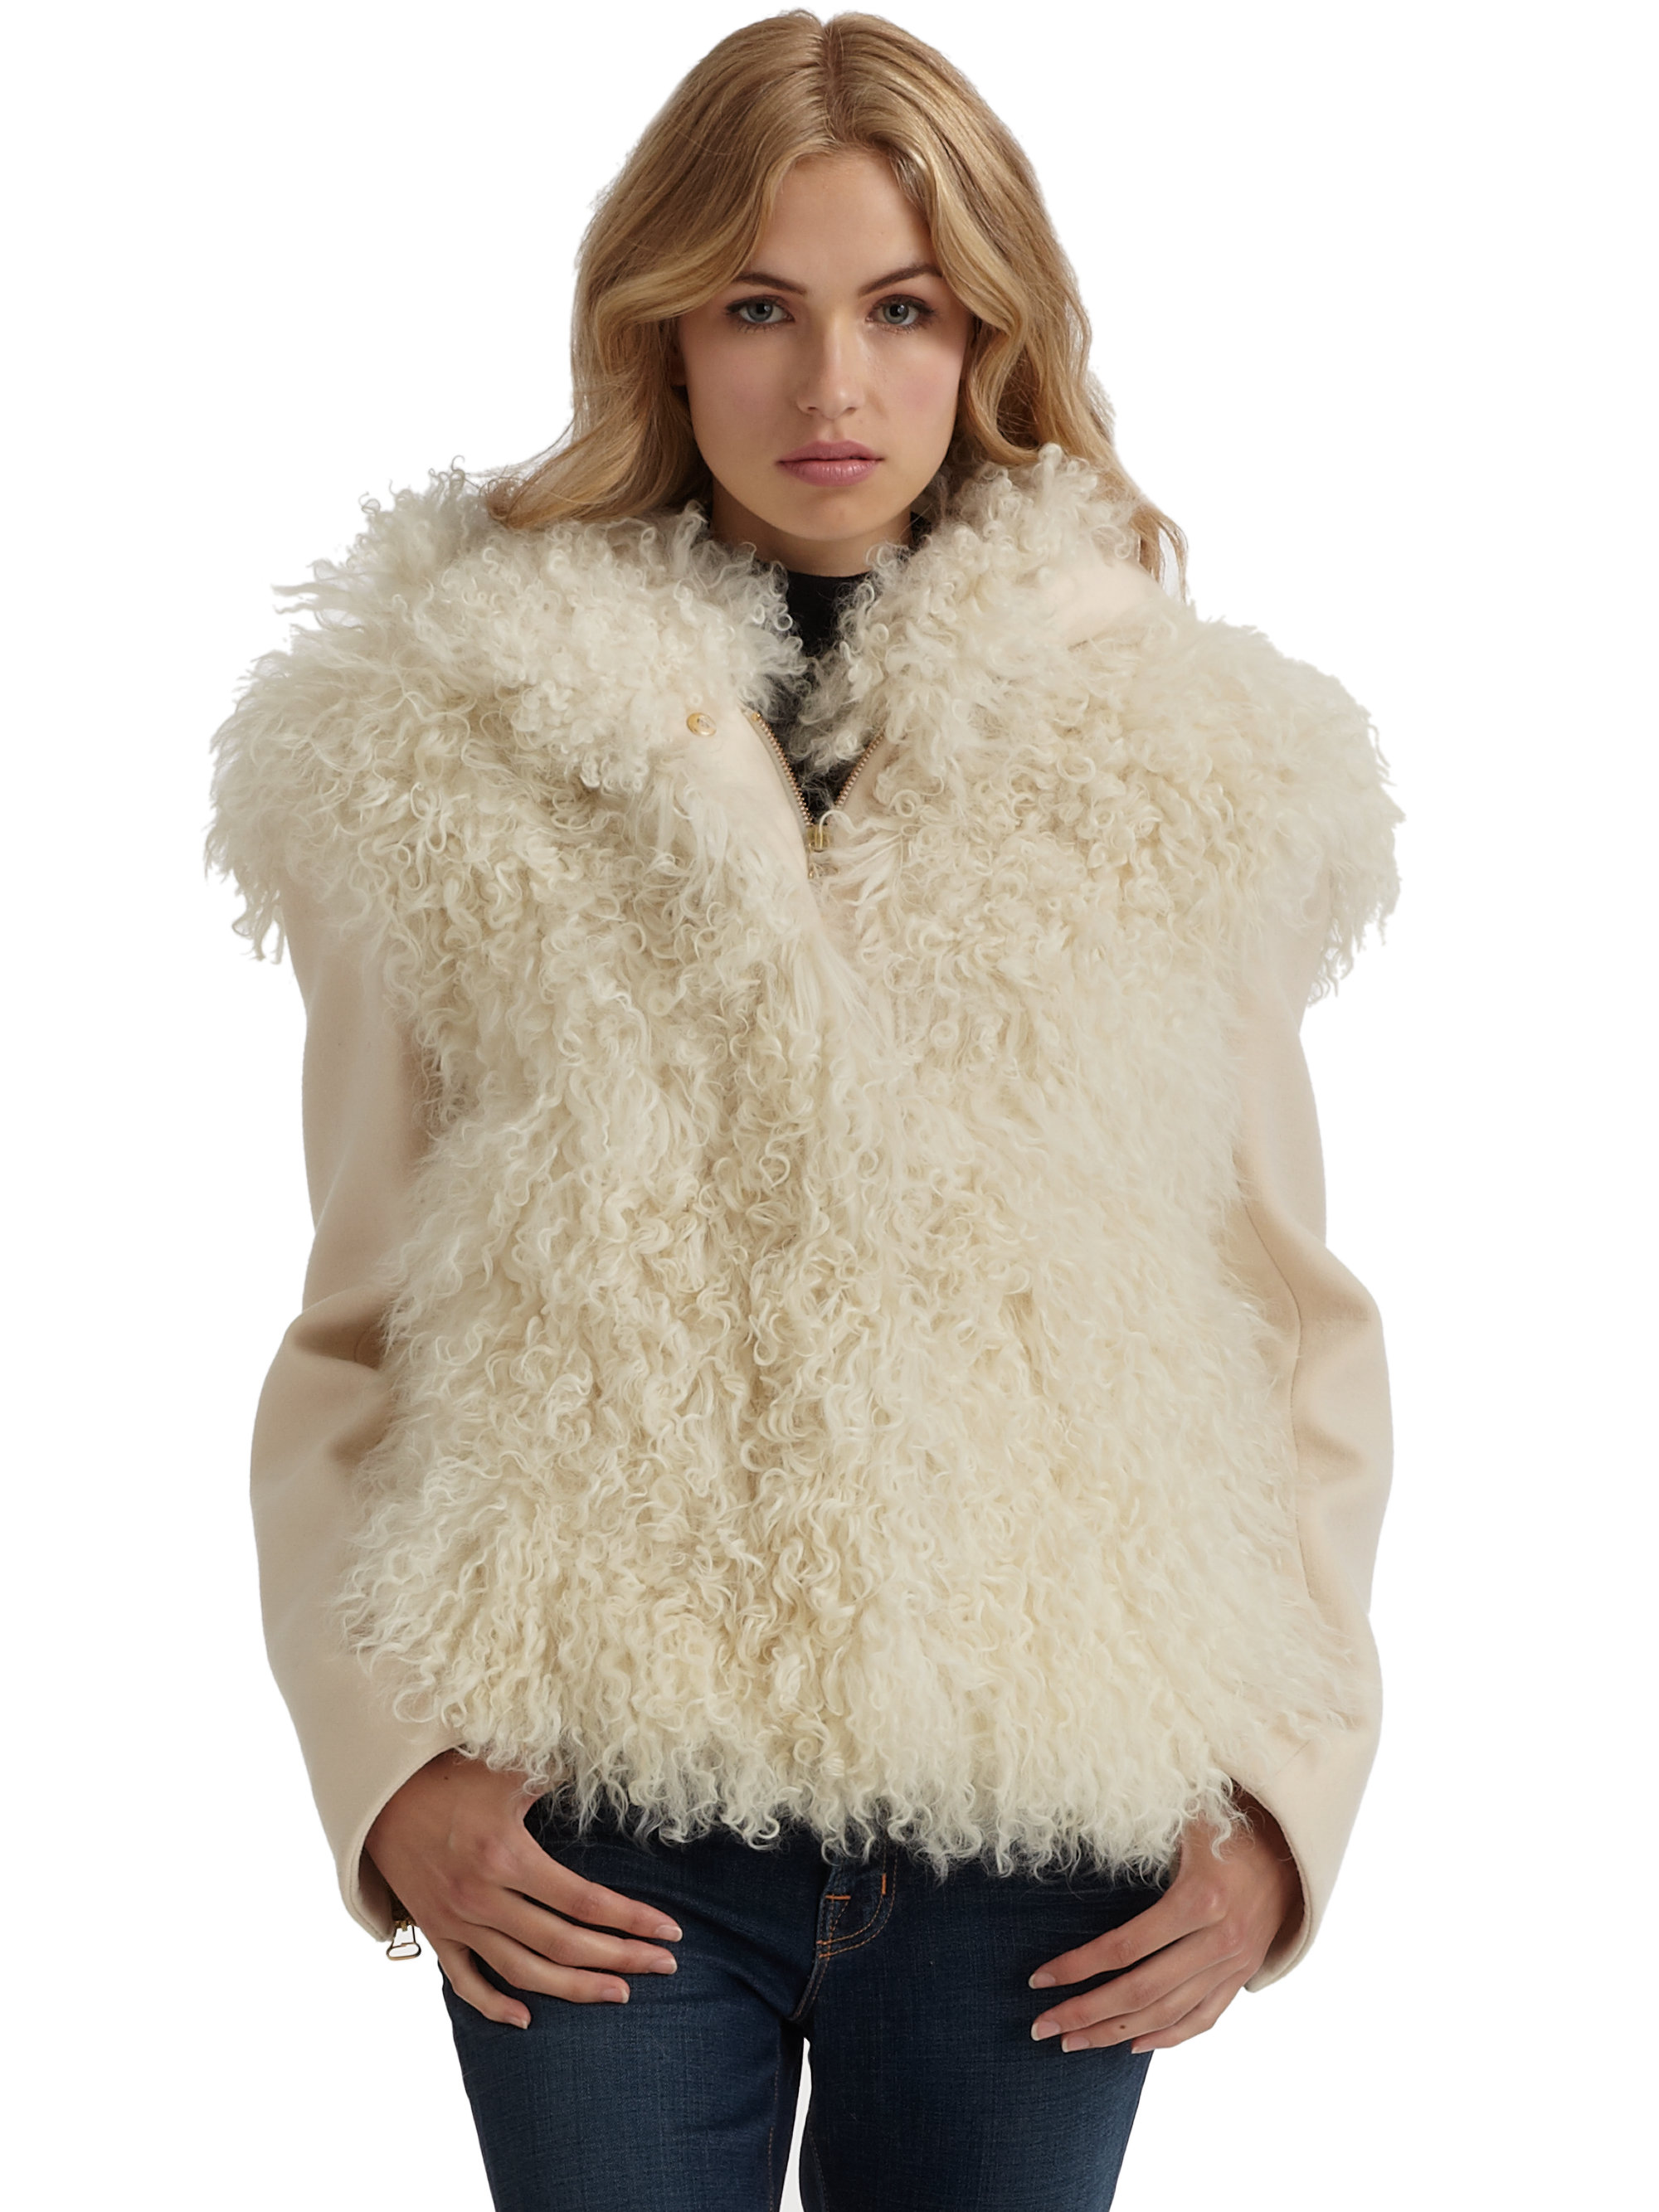 Cacharel Sheep Fur Jacket in Natural | Lyst